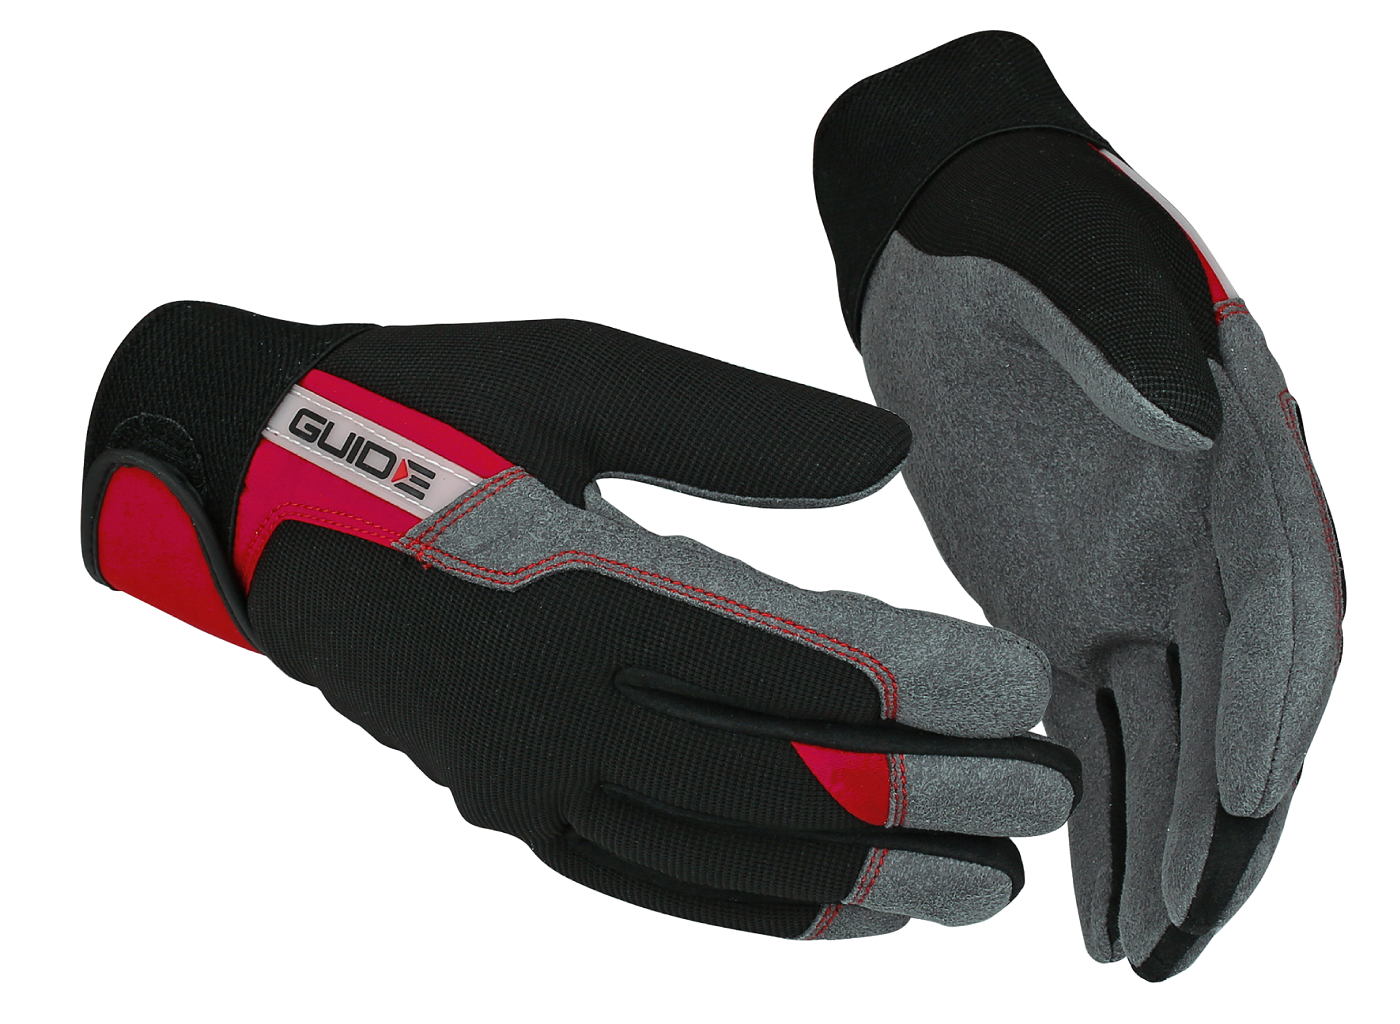 Working Glove GUIDE 5005